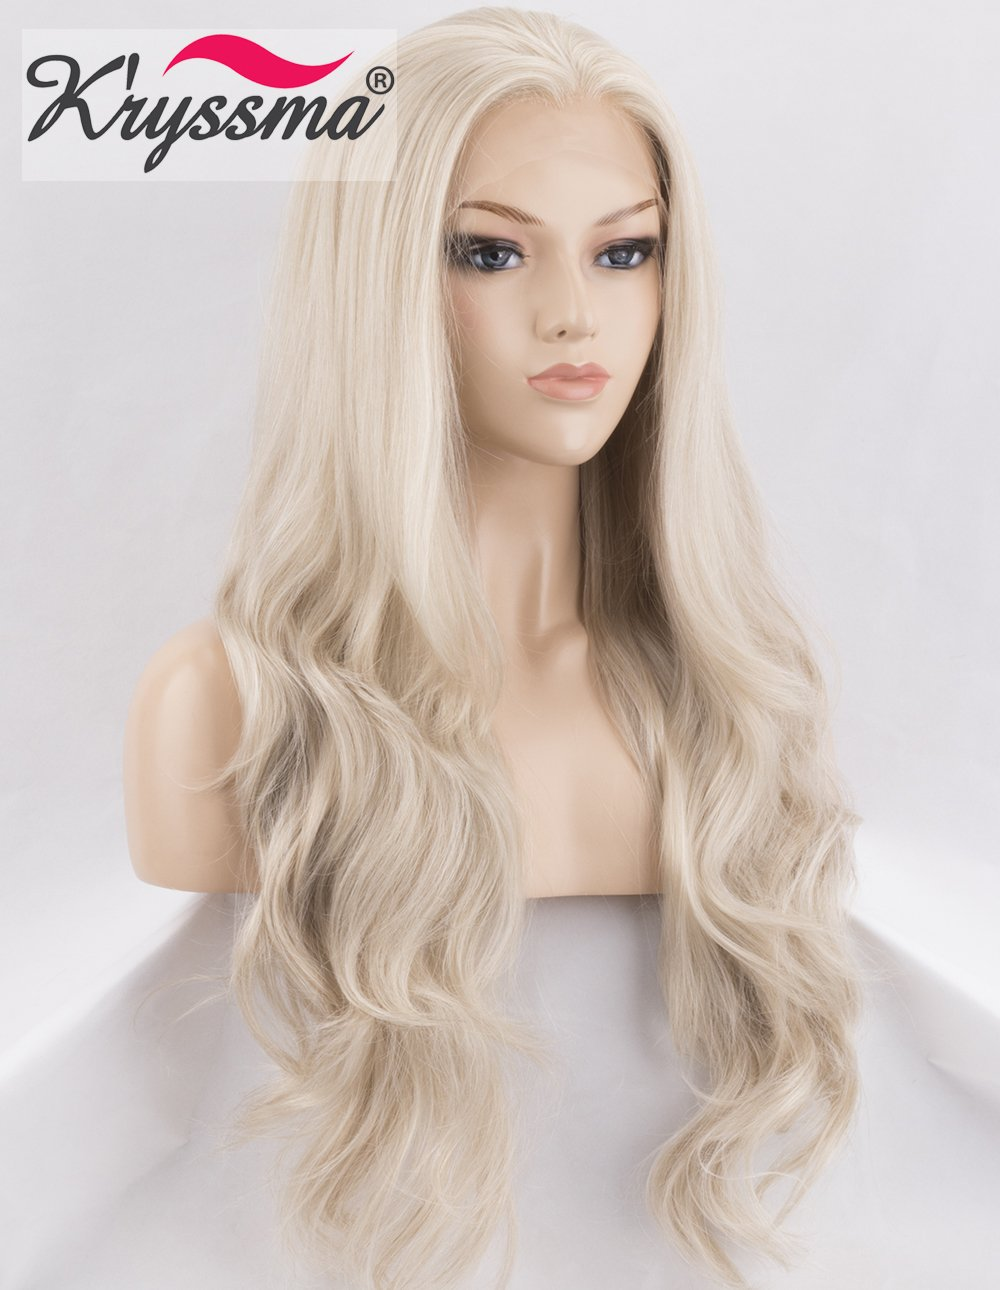 K'ryssma KÀryssma Light Blonde Lace Front Wig Long Wavy Platinum Blonde Synthetic Wigs for Women Half Hand Tied Wavy Wigs 22 inches